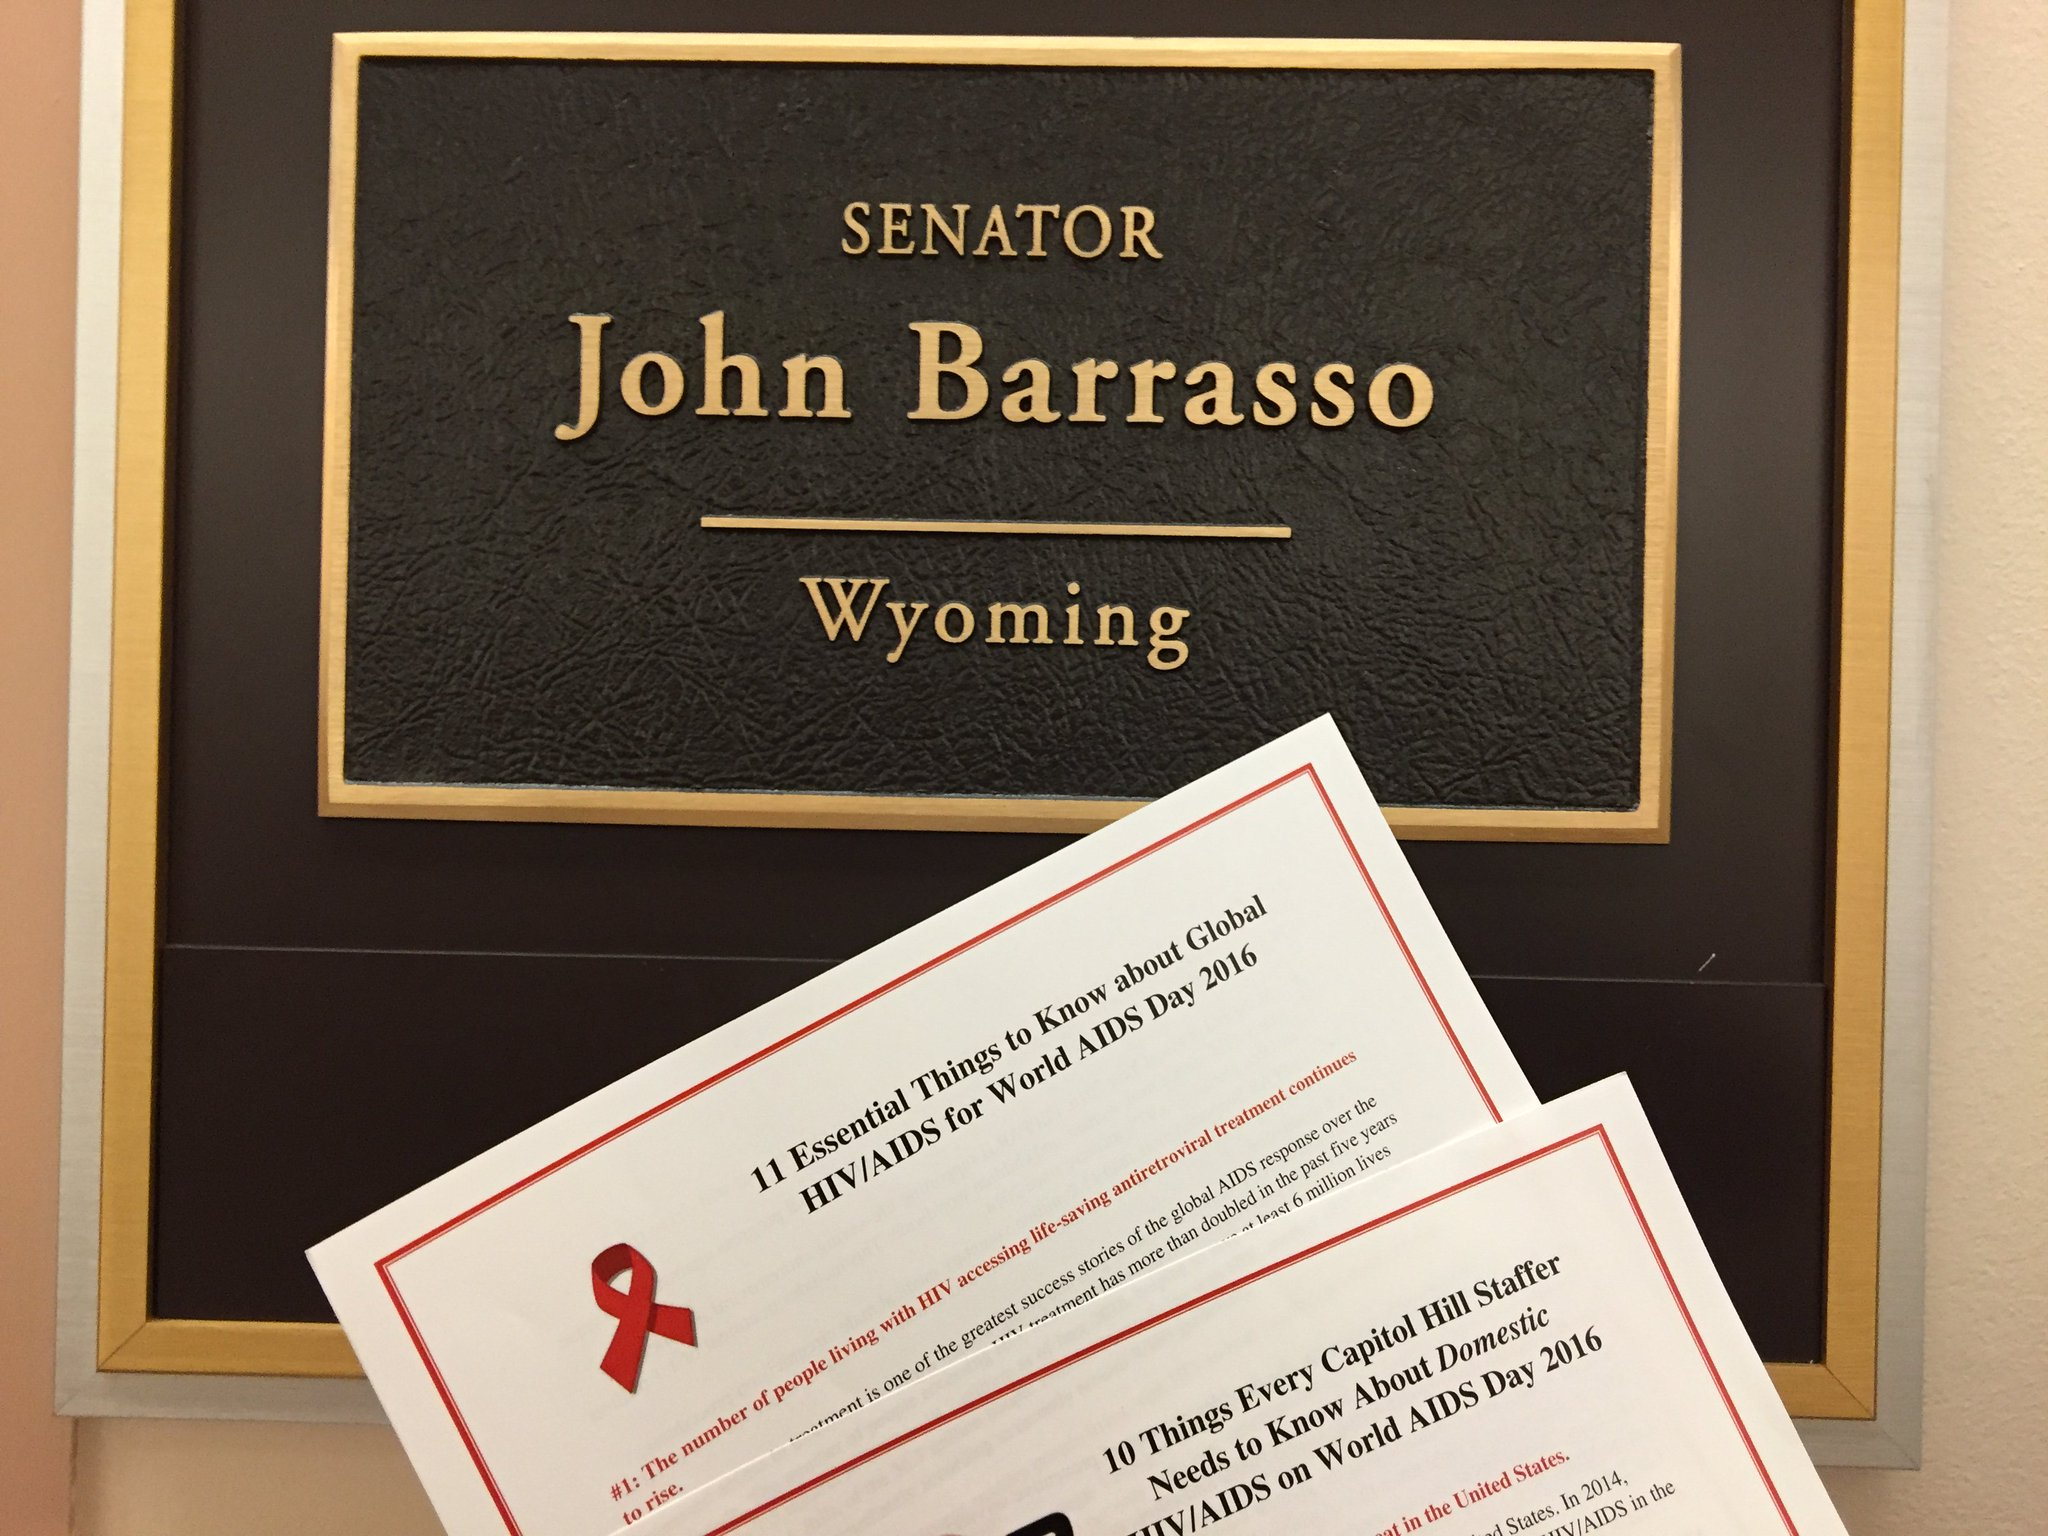 Thank you @SenJohnBarrasso for your work & efforts to #endAIDS! #WAD2016 https://t.co/xVrMFHfJag